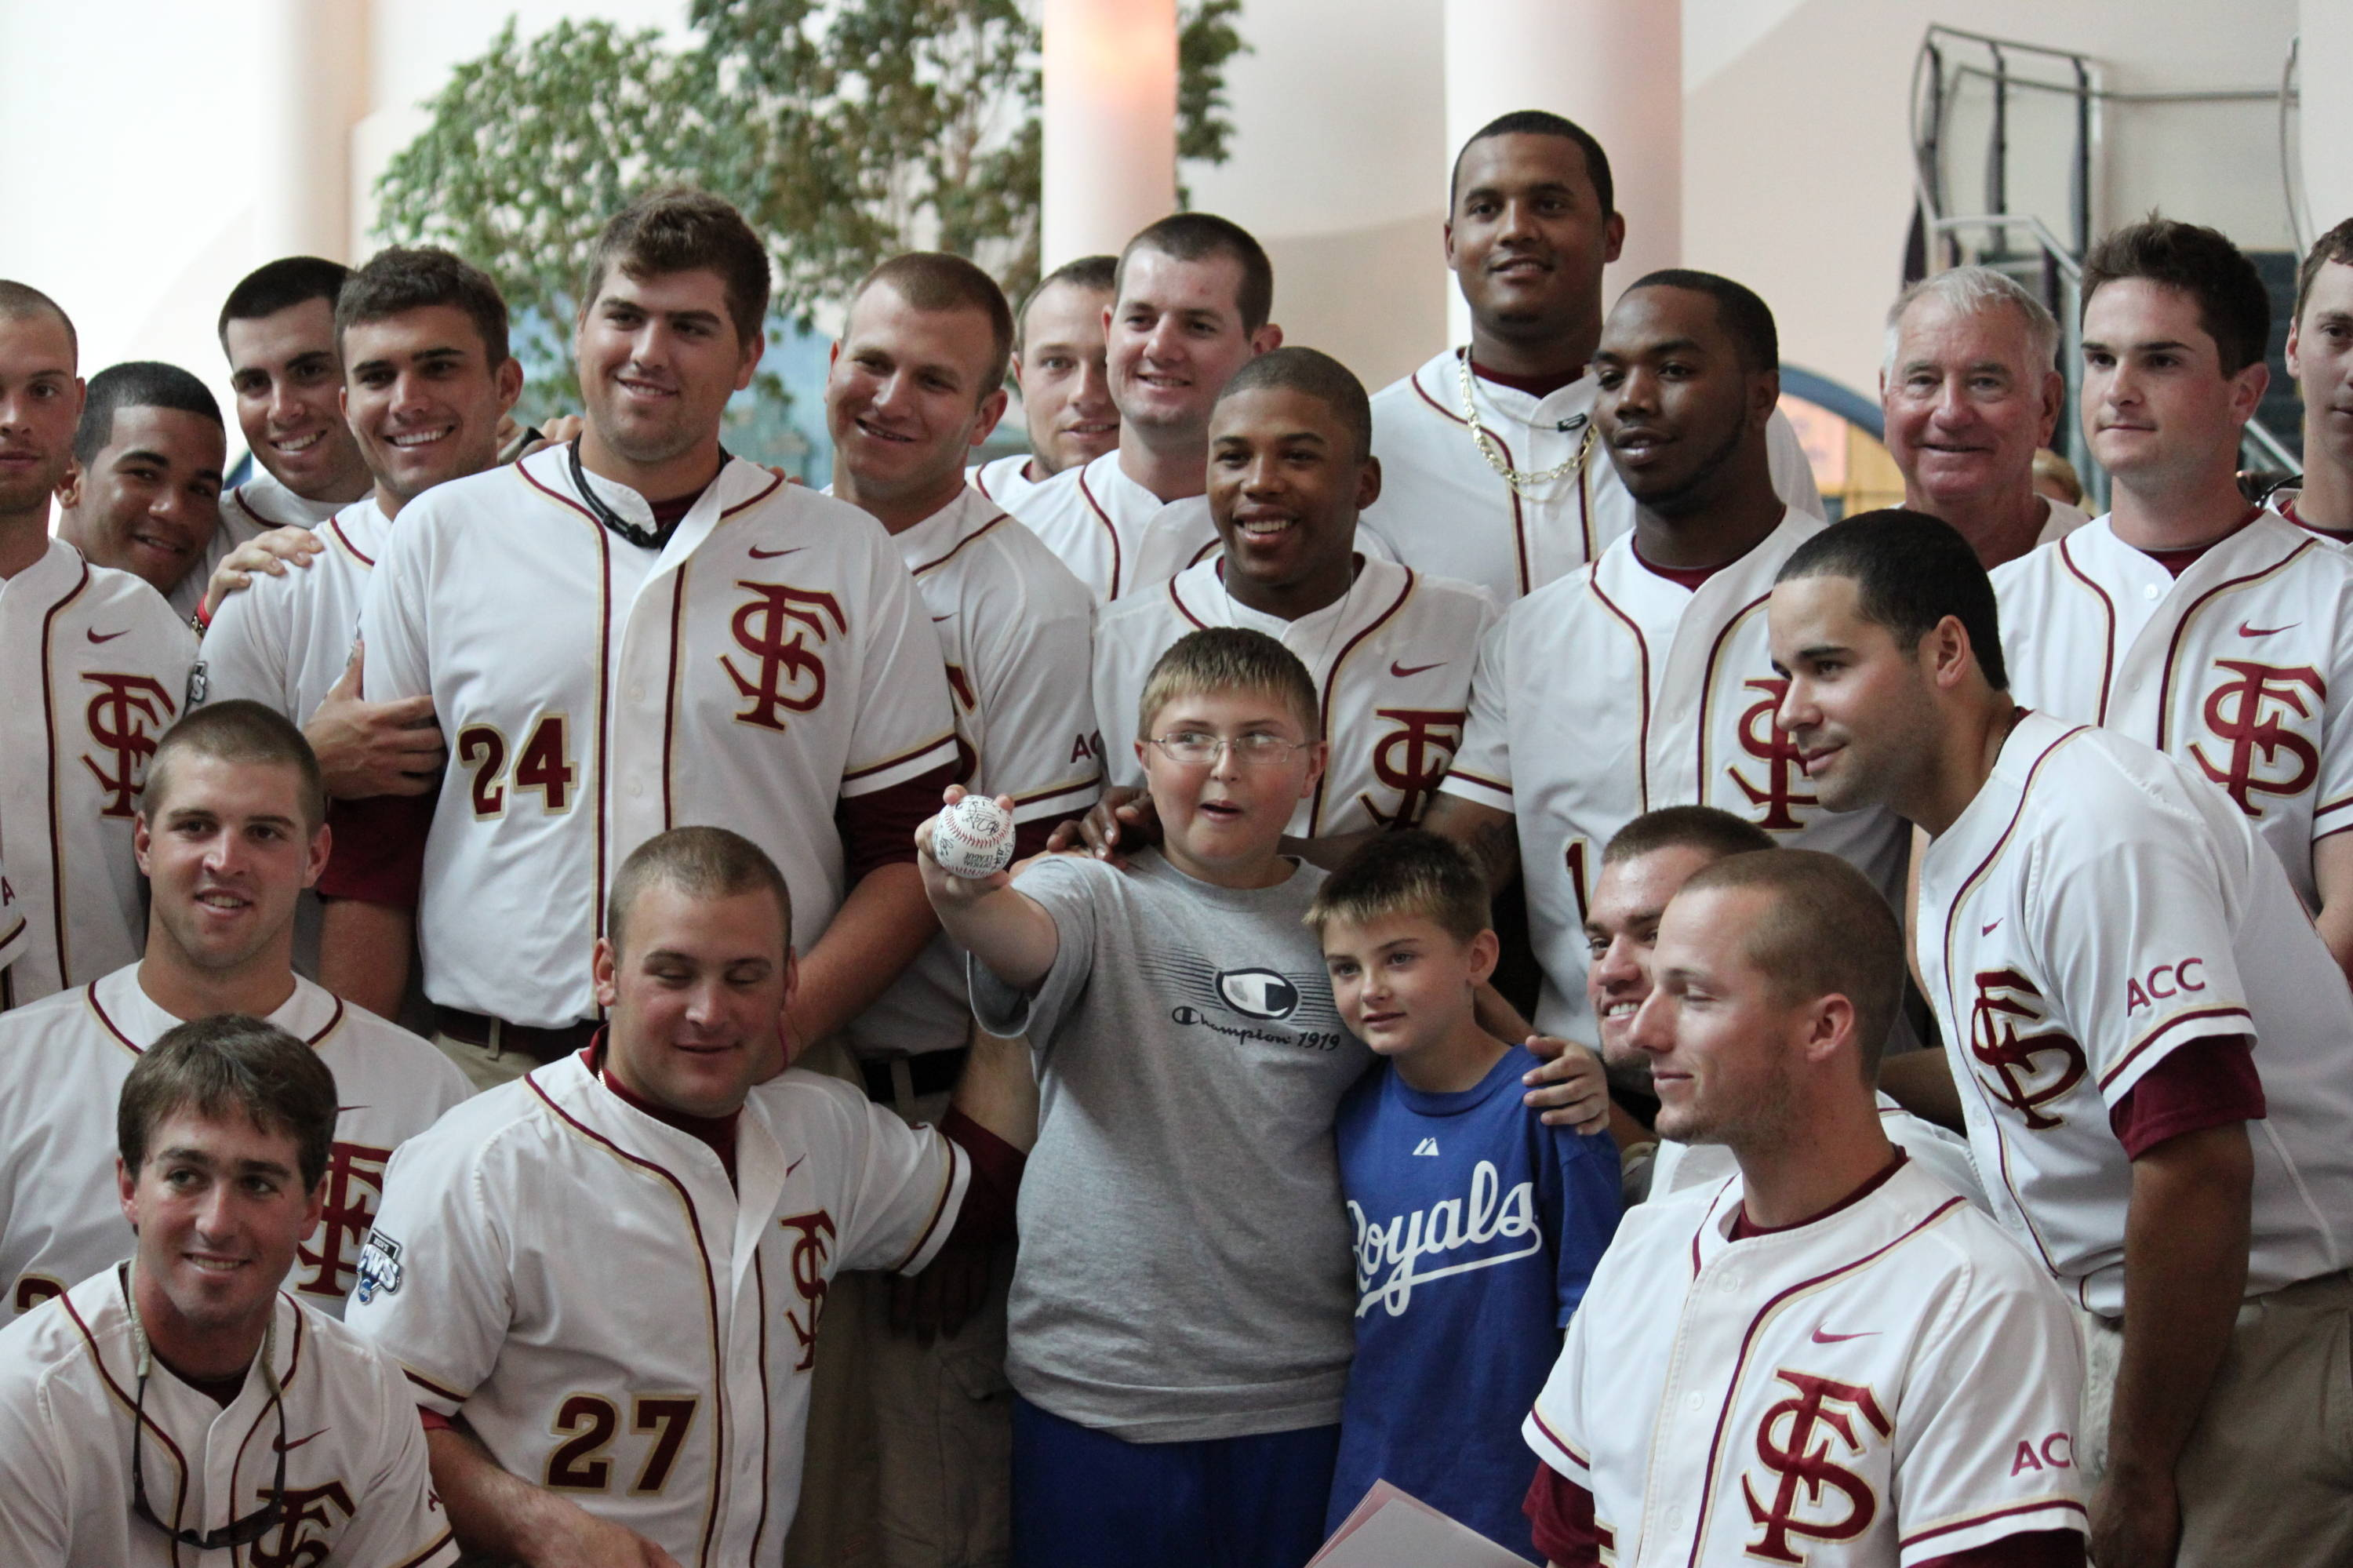 The 2010 Seminole baseball team pose for a photo with some of the children during their visit to the hospital.